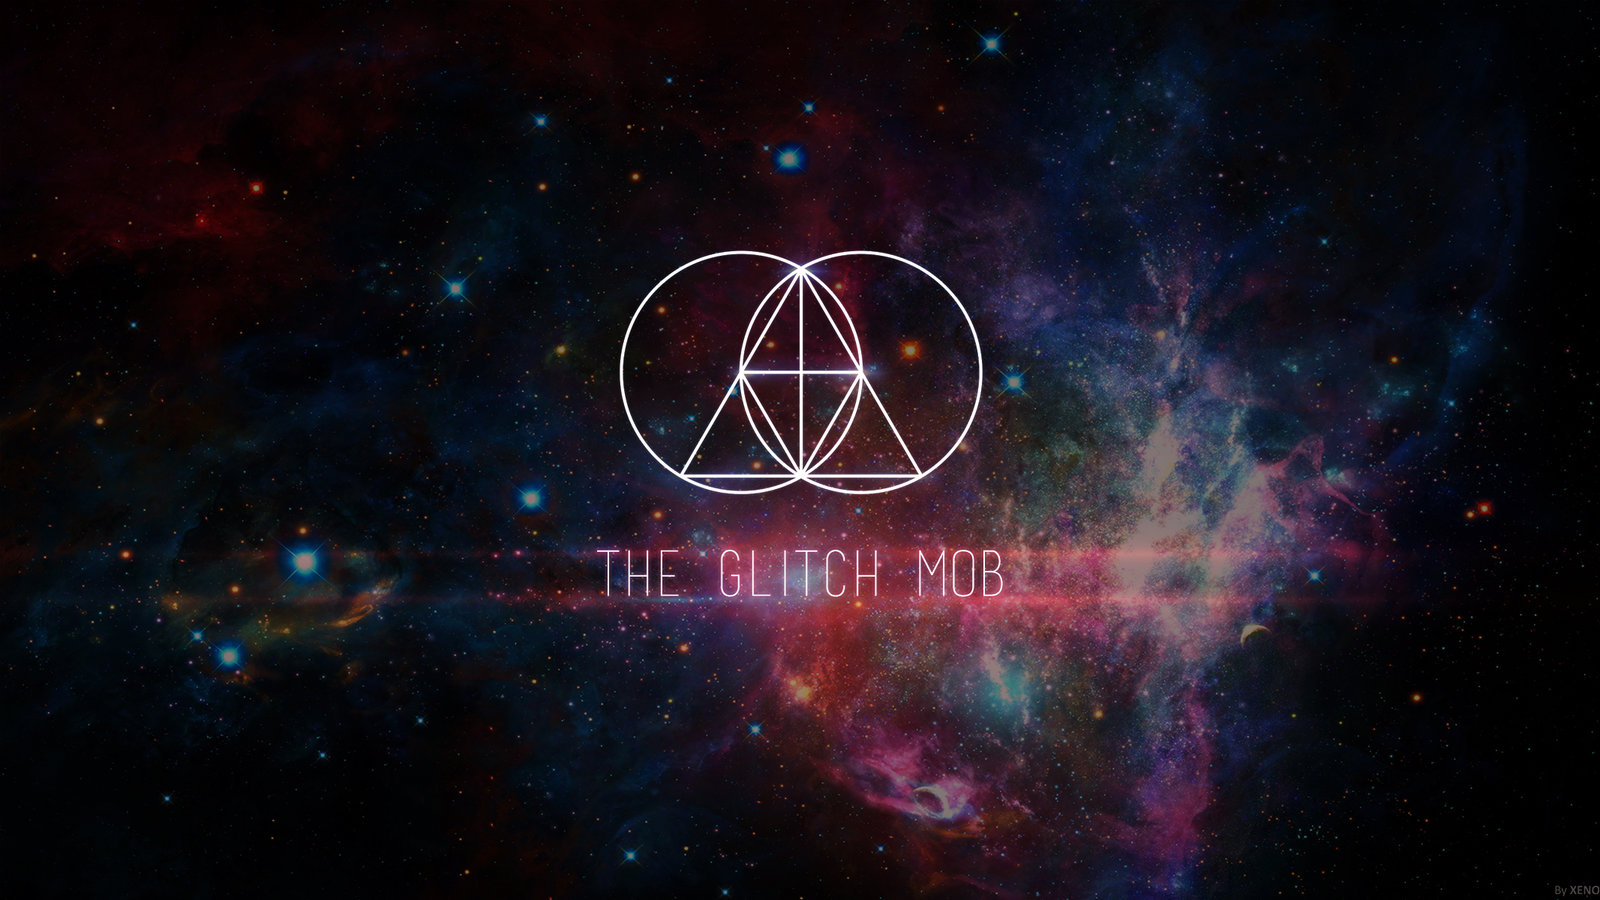 The Glitch Mob Wallpaper by XenoGraphicDesigner on DeviantArt